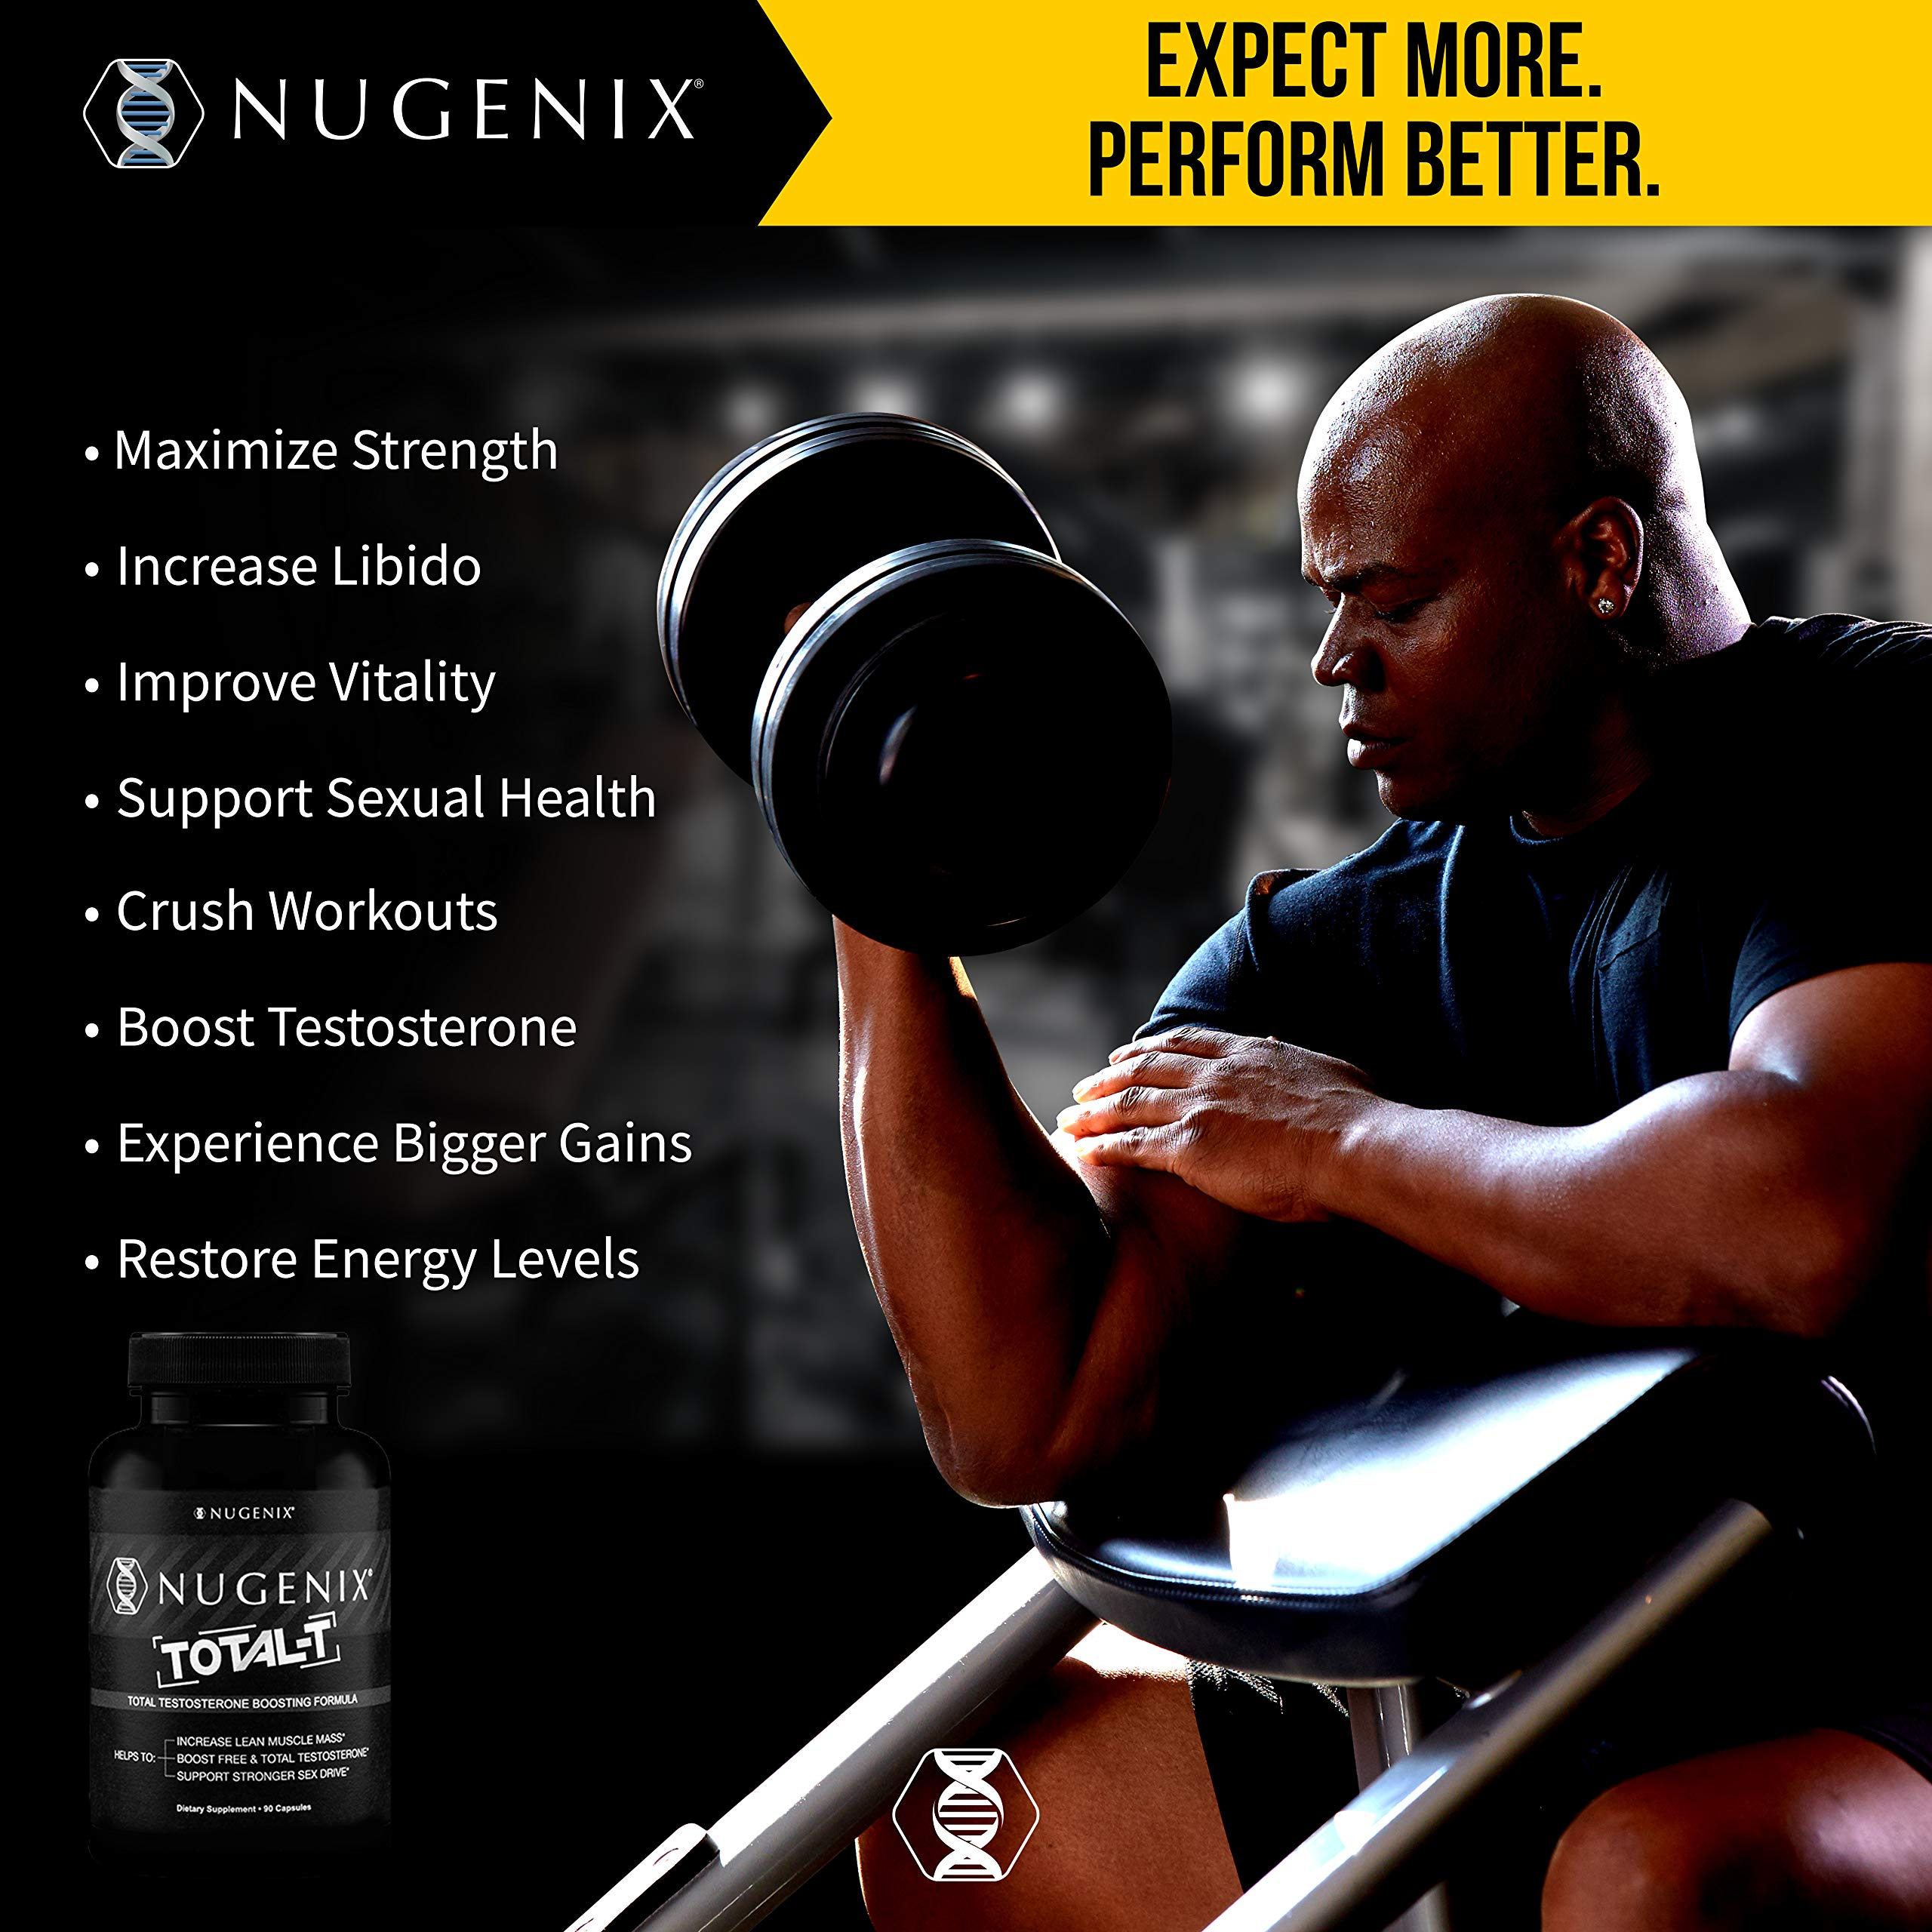 Nugenix Total-T: Men's Total Testosterone Boosting Formula. All New, High Potency, High Bioavailibility Testosterone Boosting Ingredients. Helps with Energy, Muscle, Libido, Stamina, and Drive by Nugenix (Image #5)